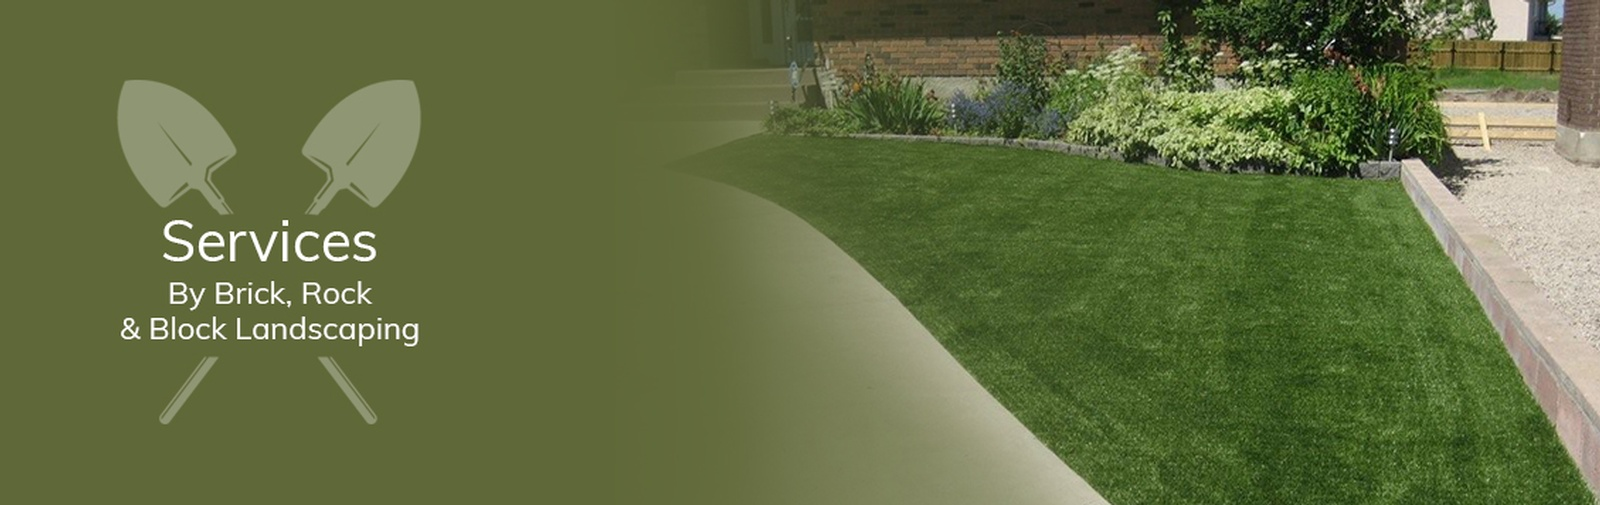 Lawn Care and Maintenance Services Grande Prairie by Brick, Rock and Block Landscaping